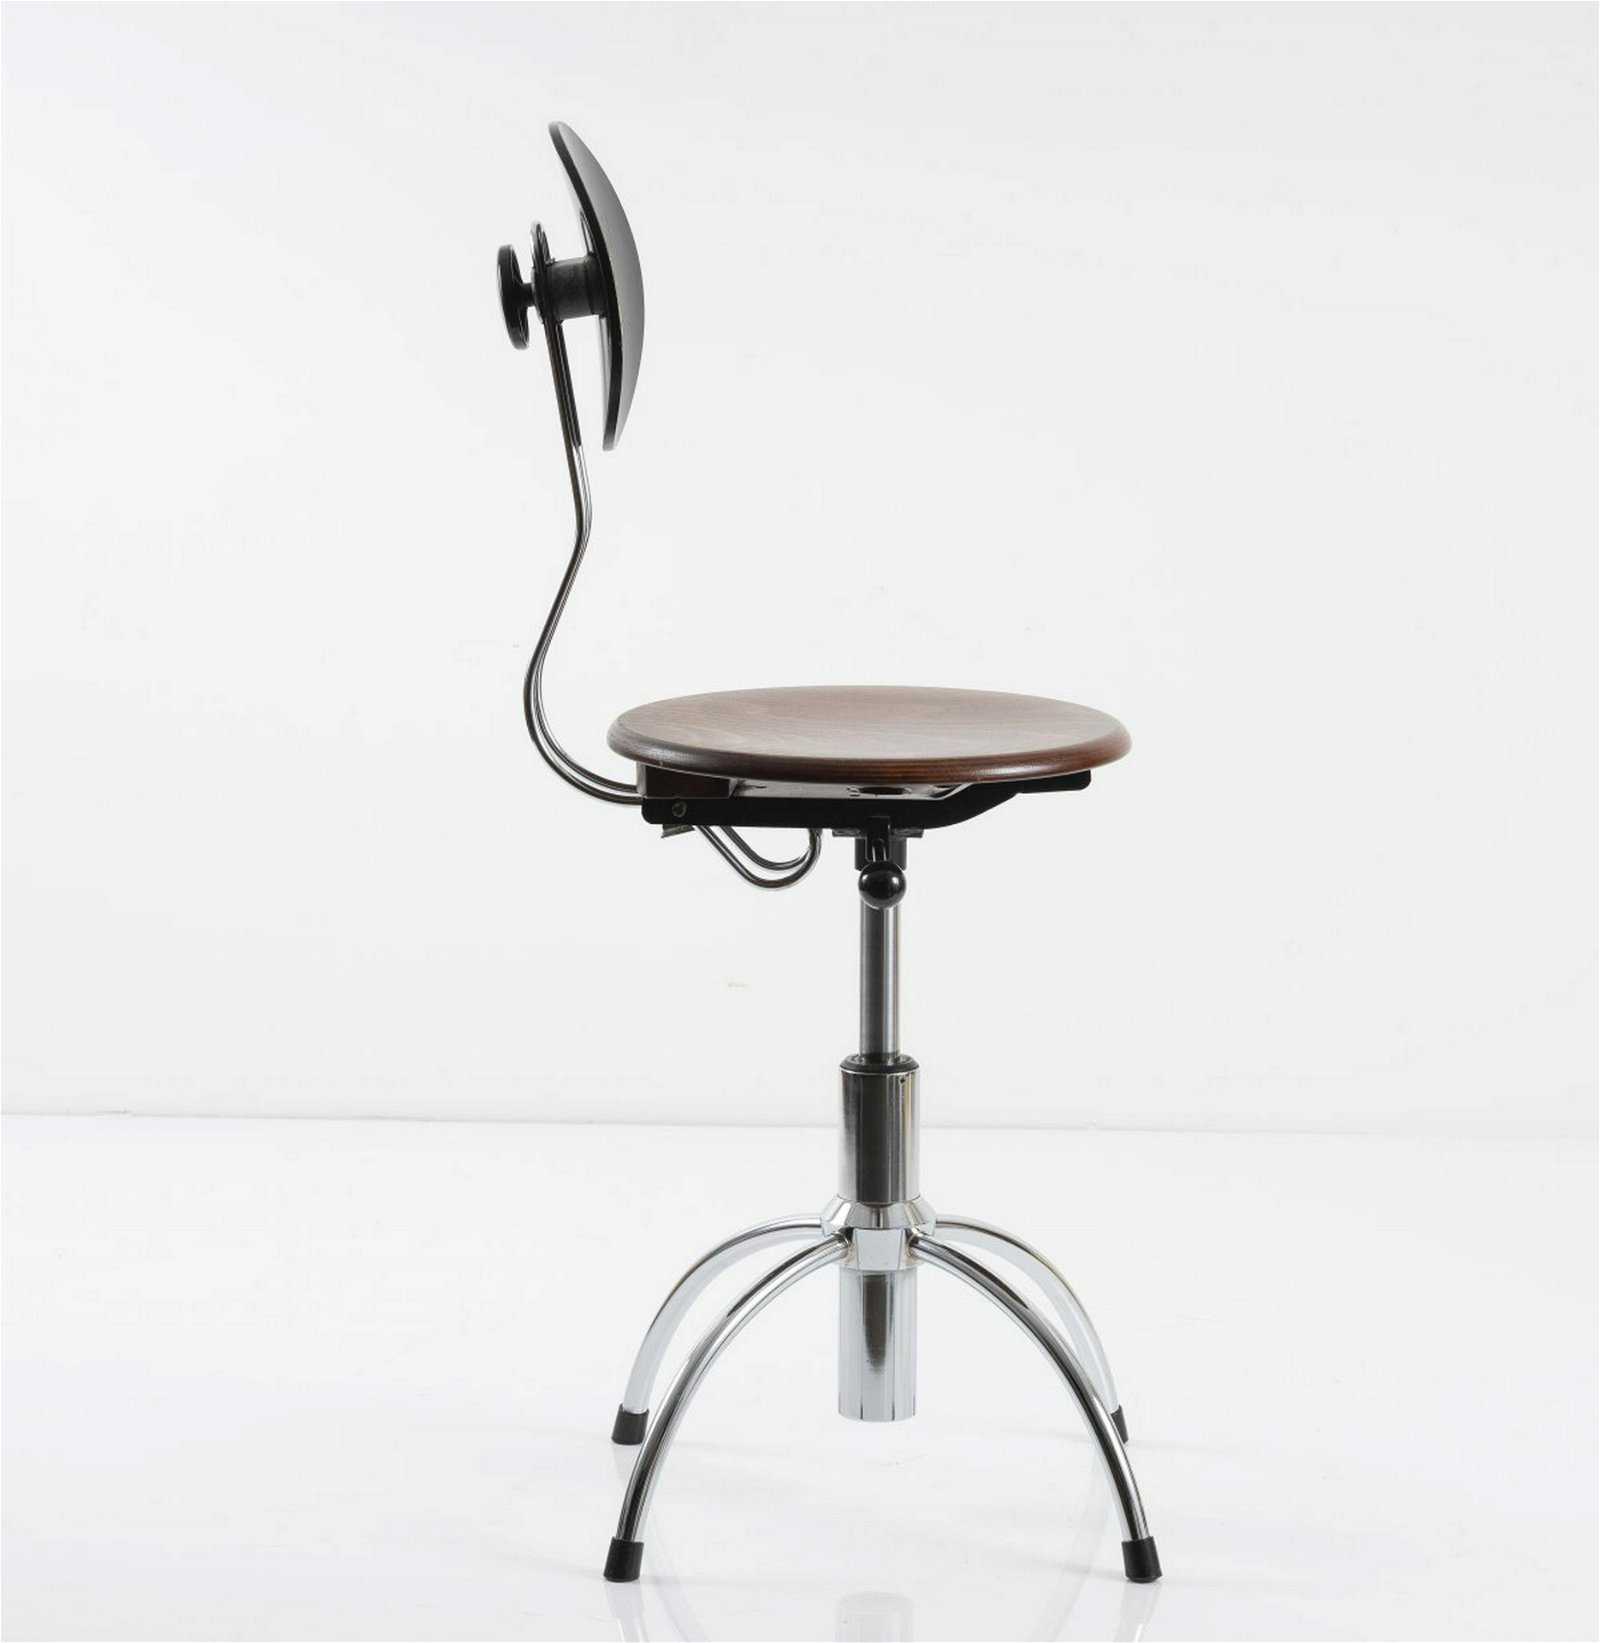 Egon Eiermann, 'SE 41' desk chair, 1951